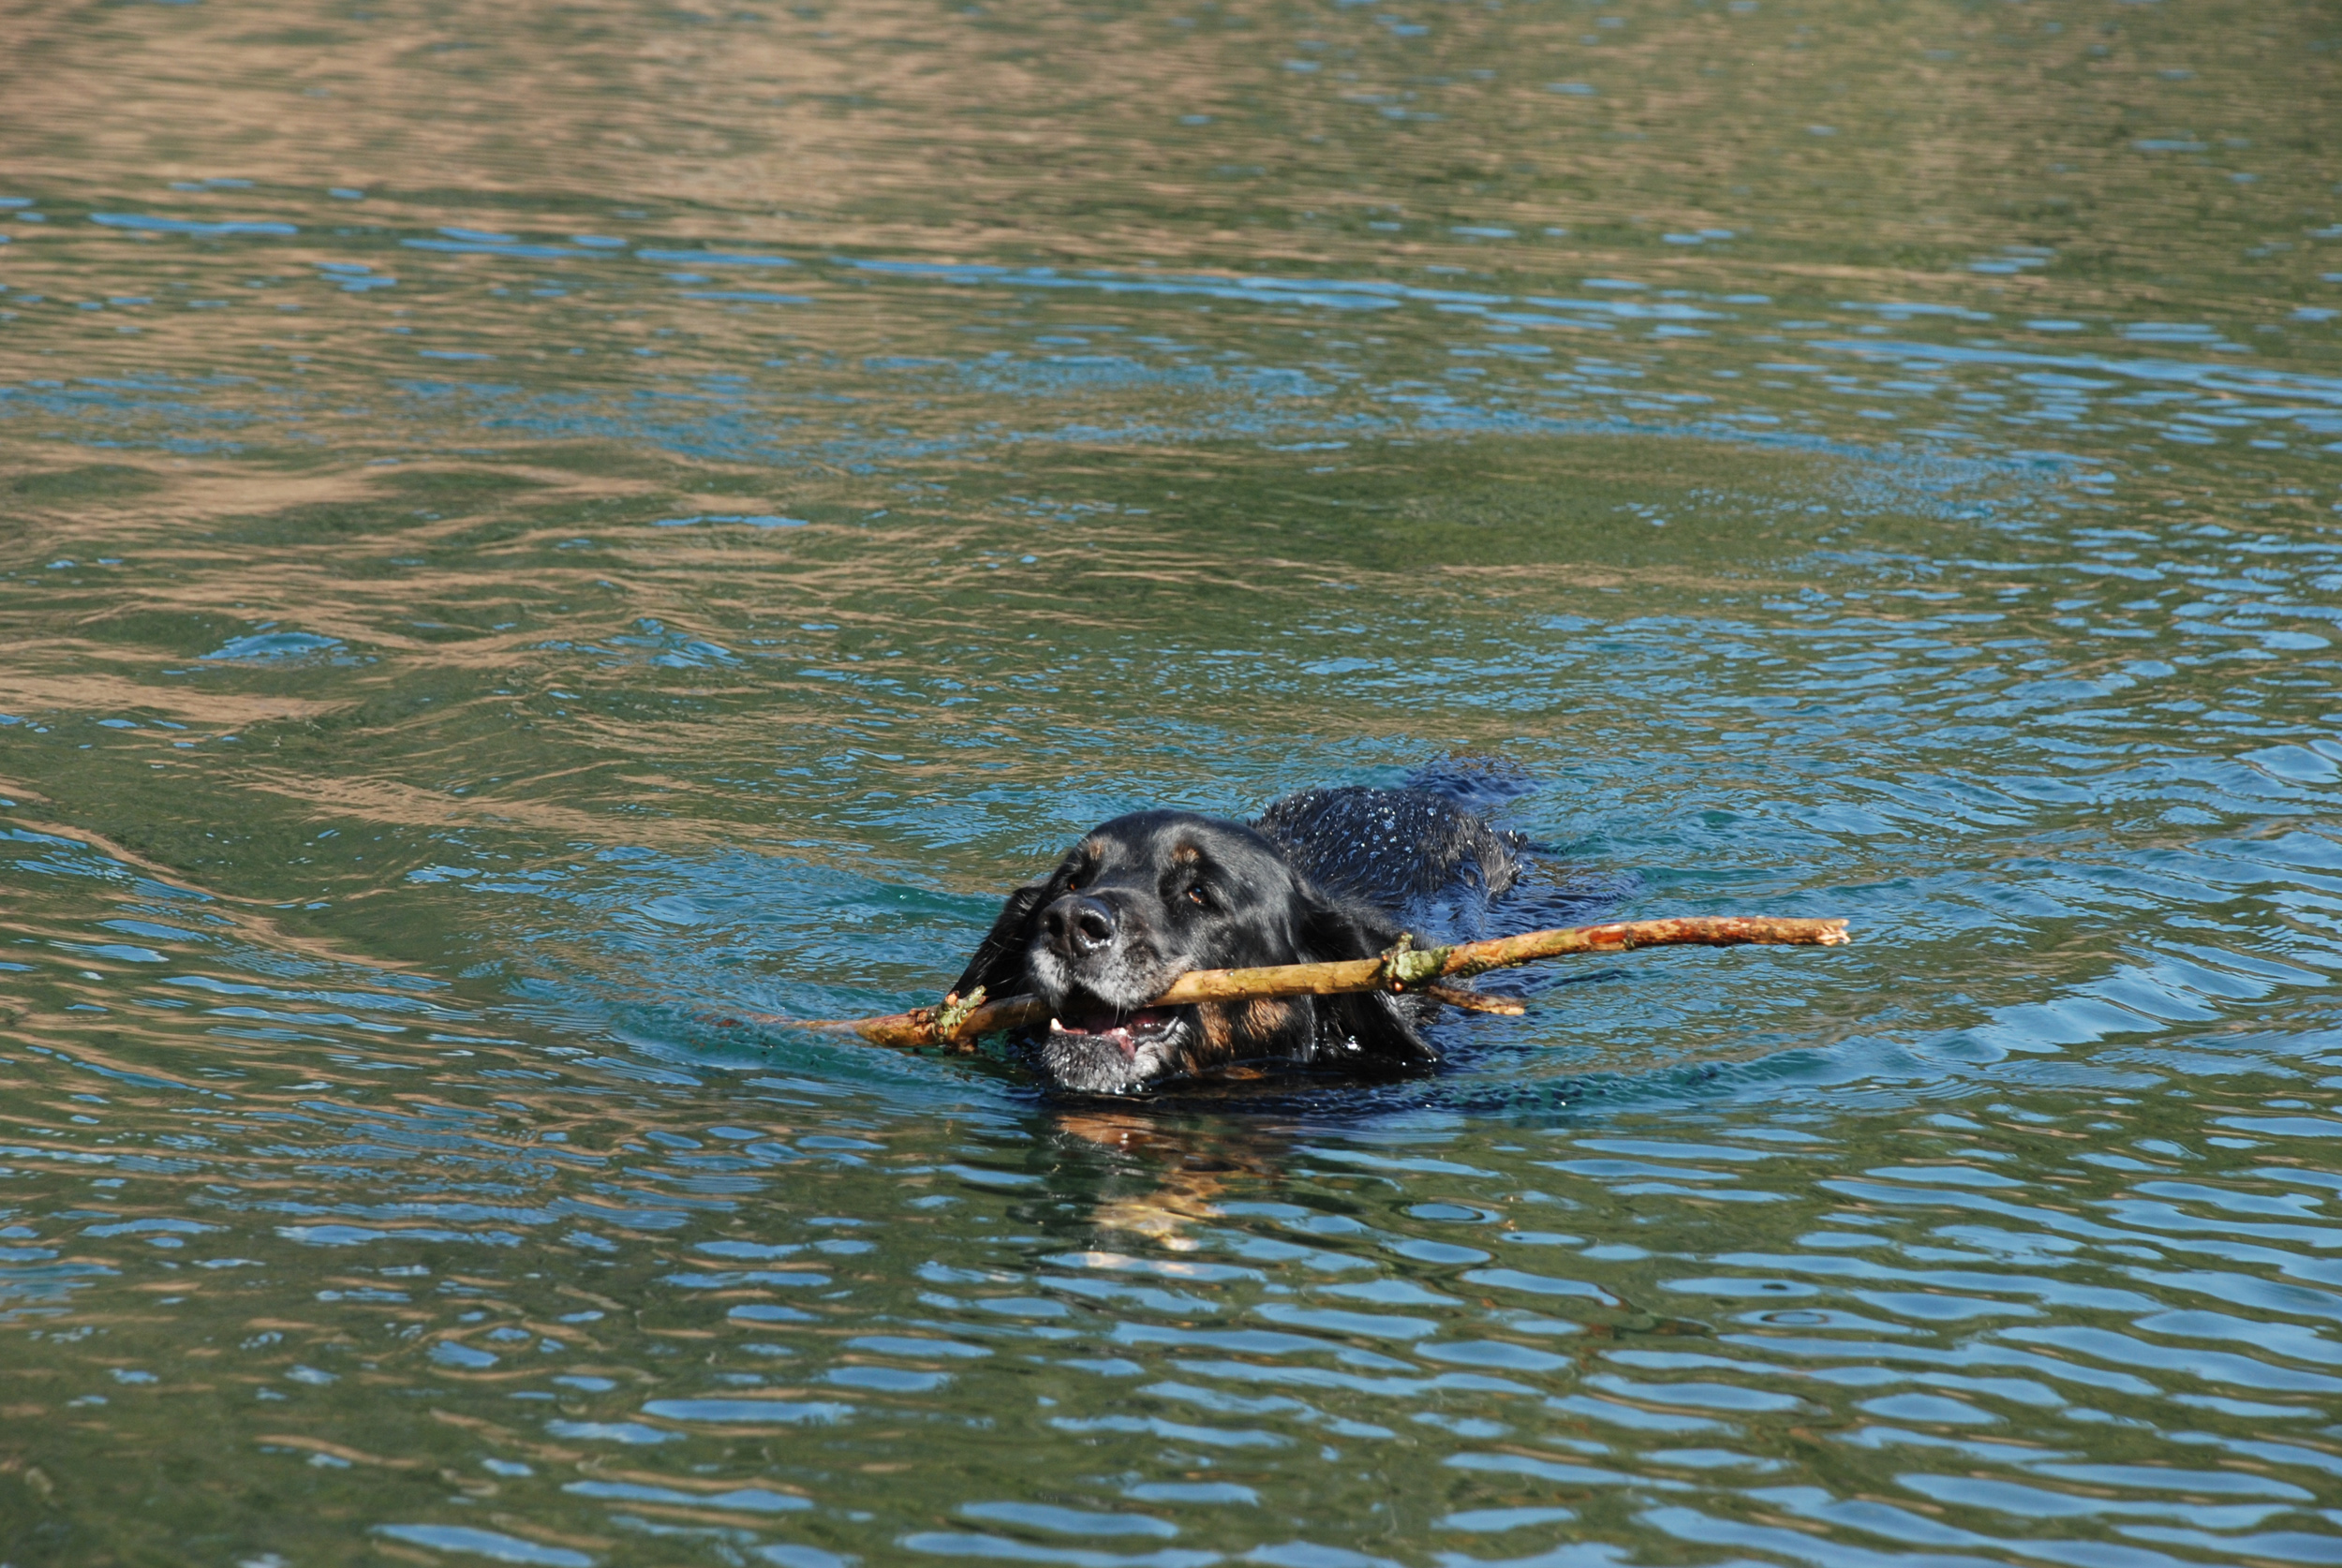 Tybee swimming back with a stick.